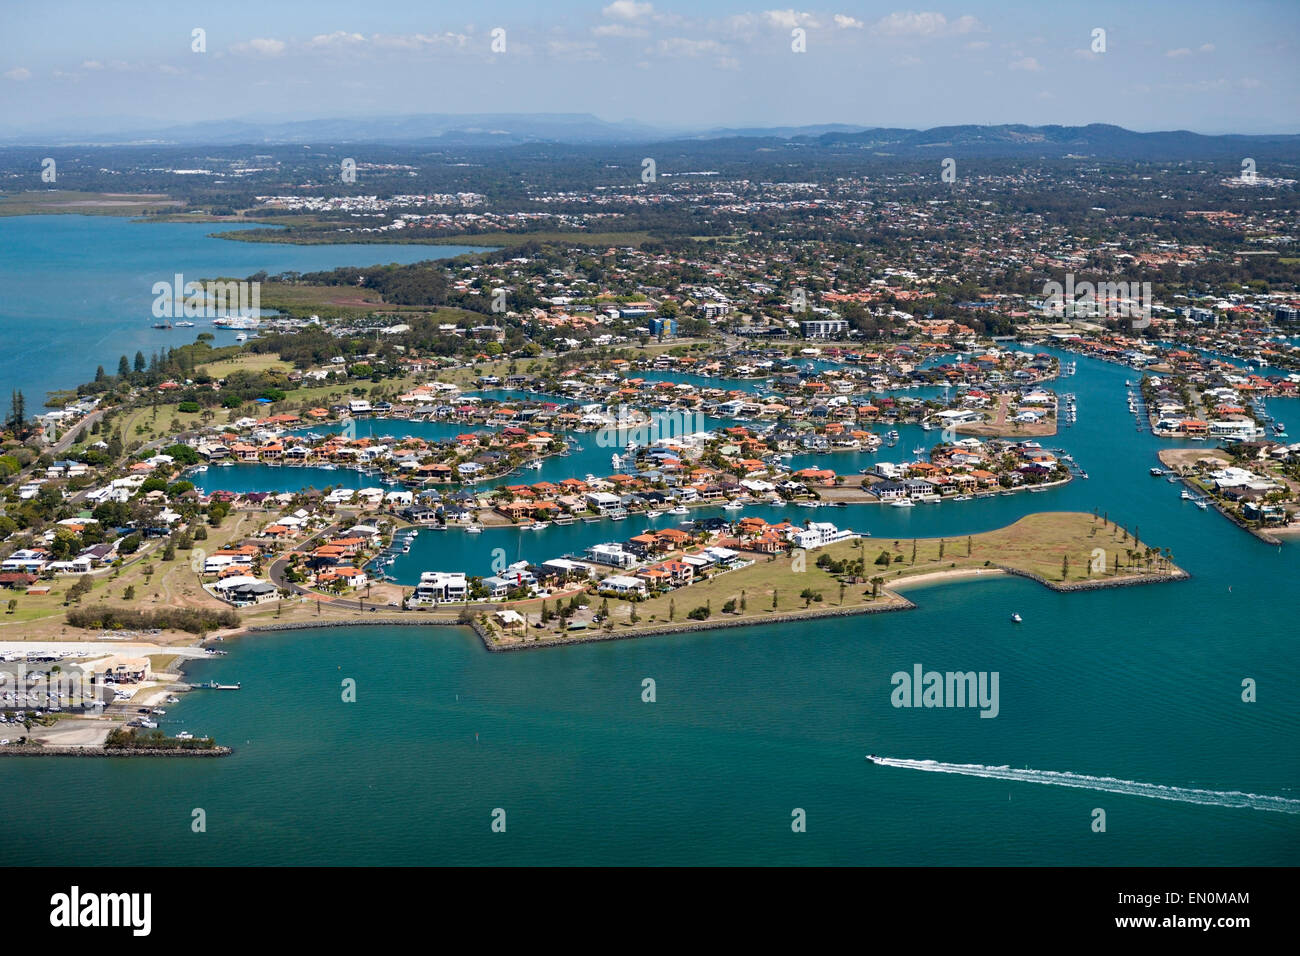 Aerial View of Raby Bay, Cleveland, Brisbane, Australia - Stock Image